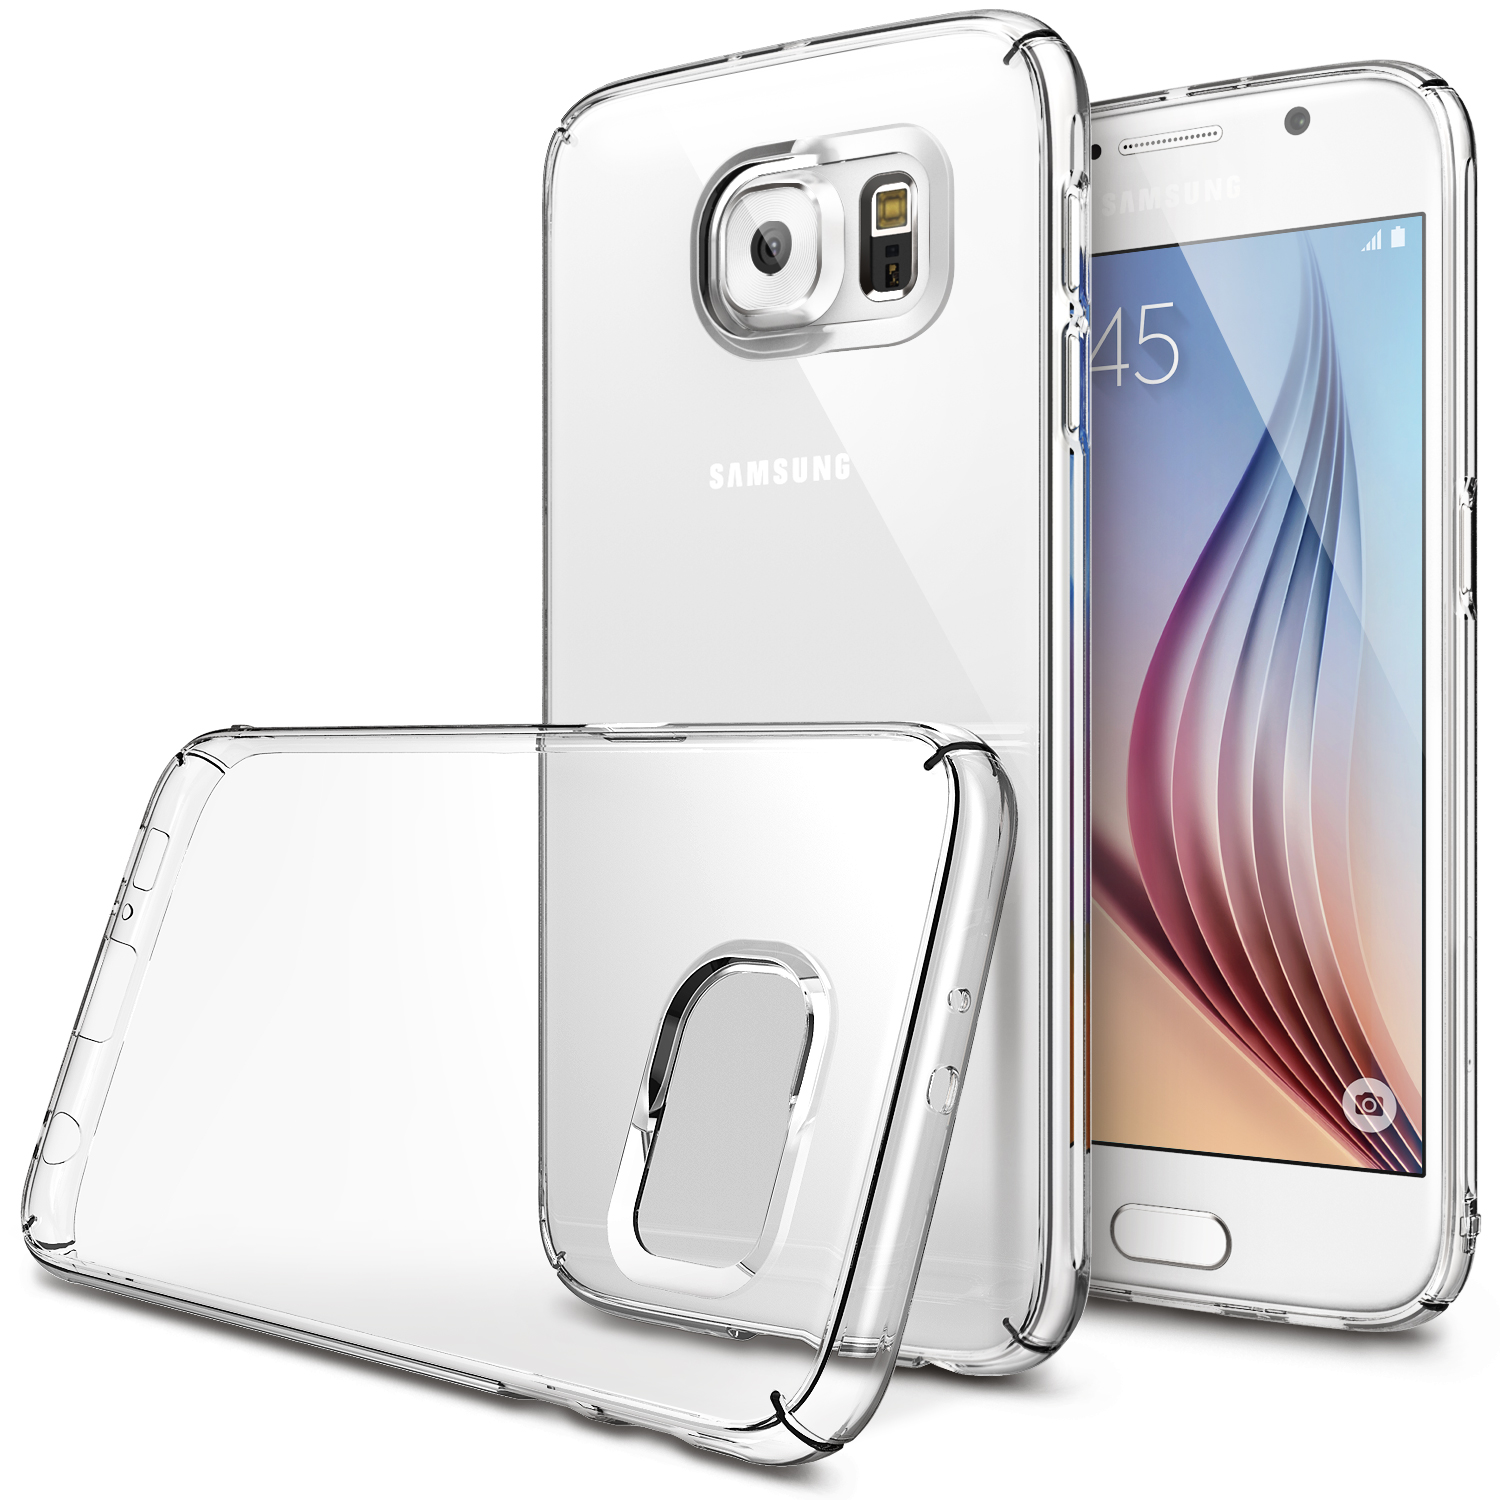 Samsung Galaxy S6 Case, Ringke [Clear] SLIM Series Featuring Slim Dual Coated Matte Hard Protective Polycarbonate w/ Free Screen Protector